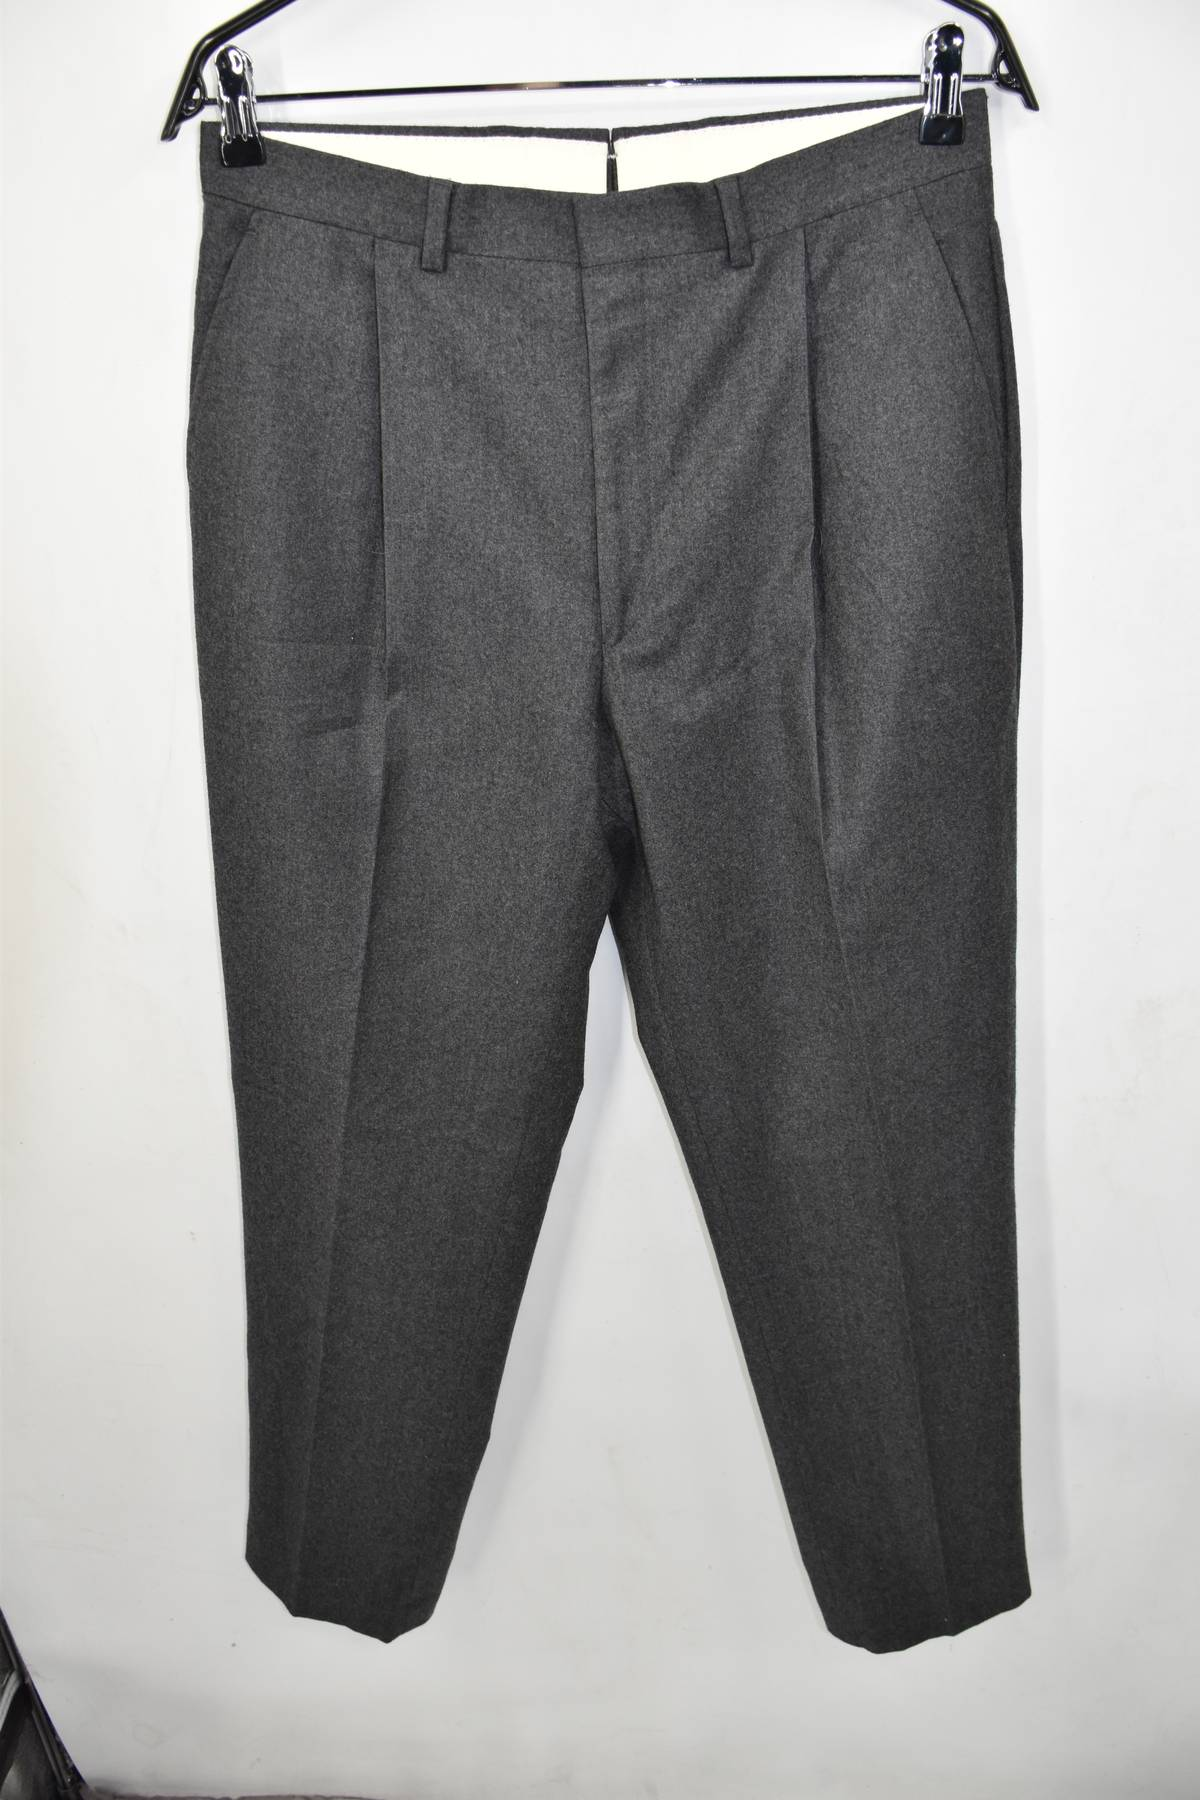 Loro Piana Austin Reed Loro Piana Wool Pants 32 32 Grailed